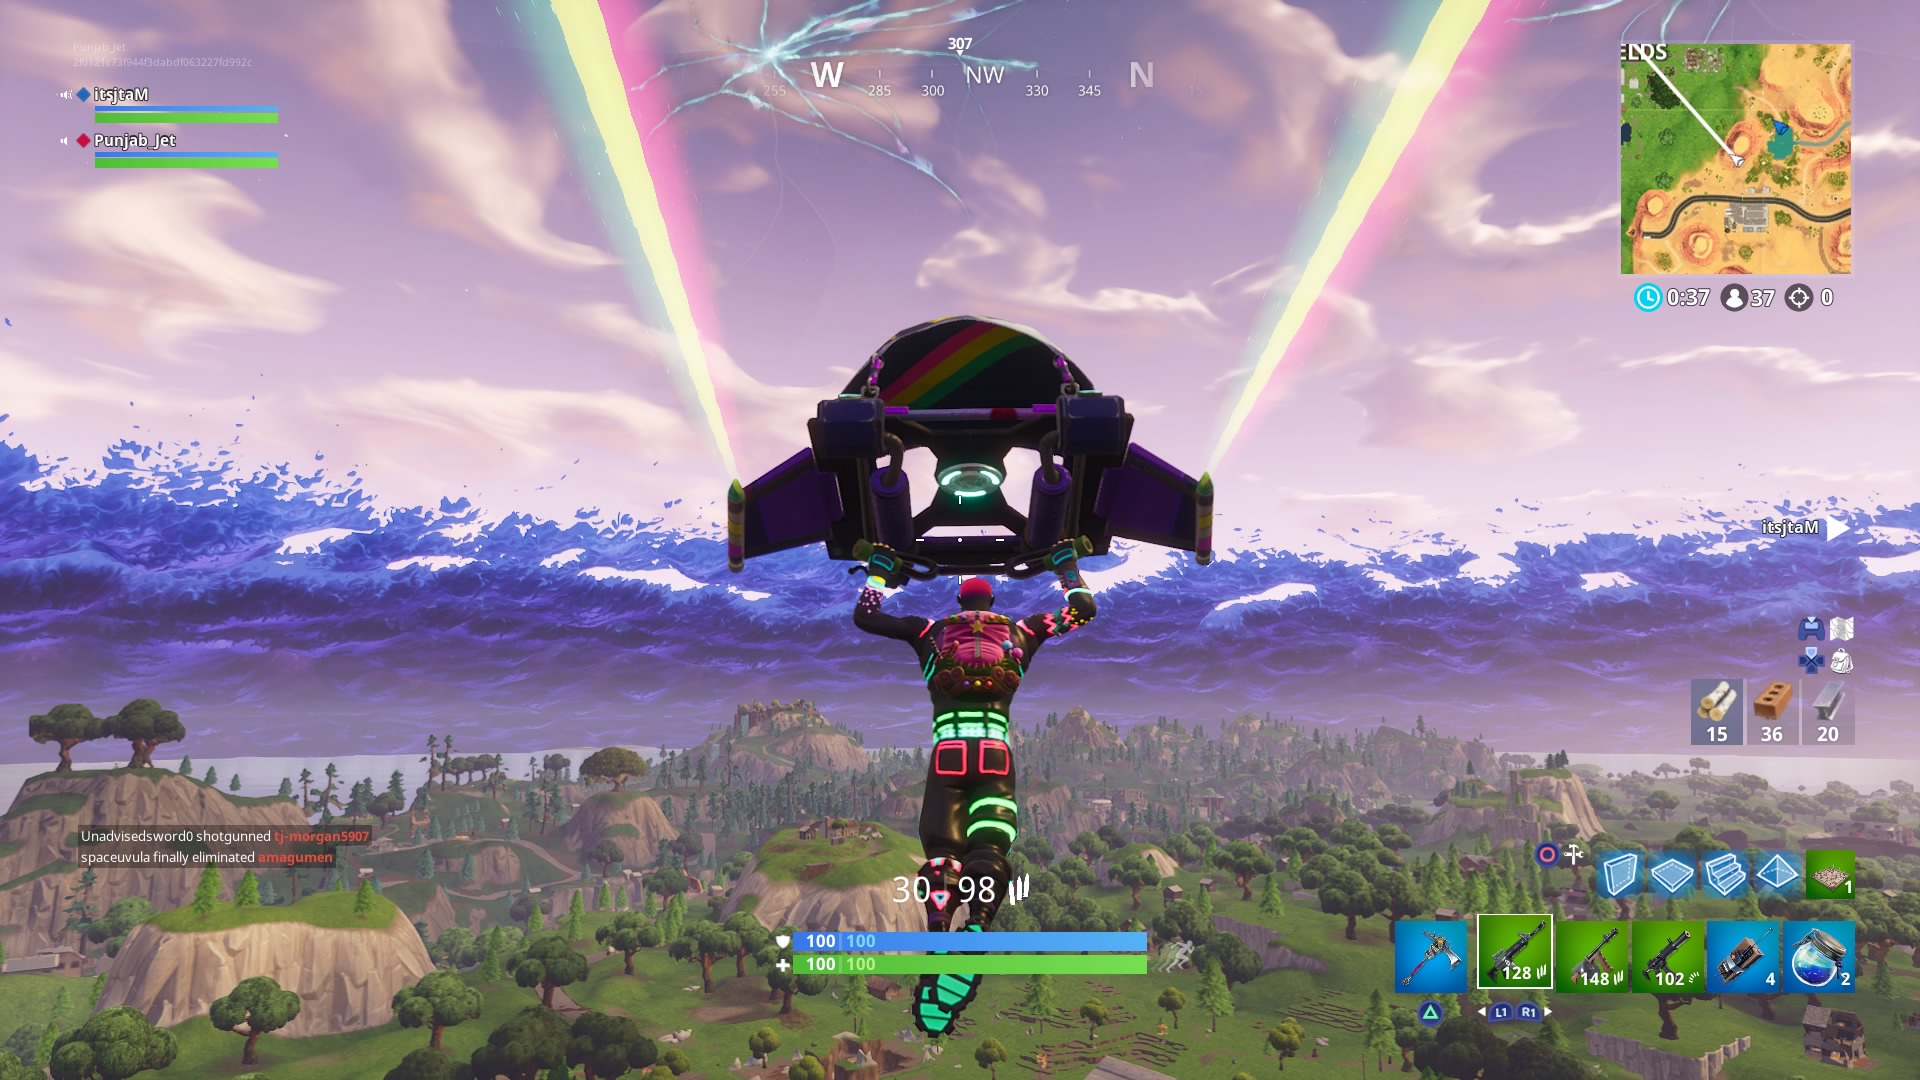 fortnite liteshow skin launch pad widescreen desktop wallpaper 1498